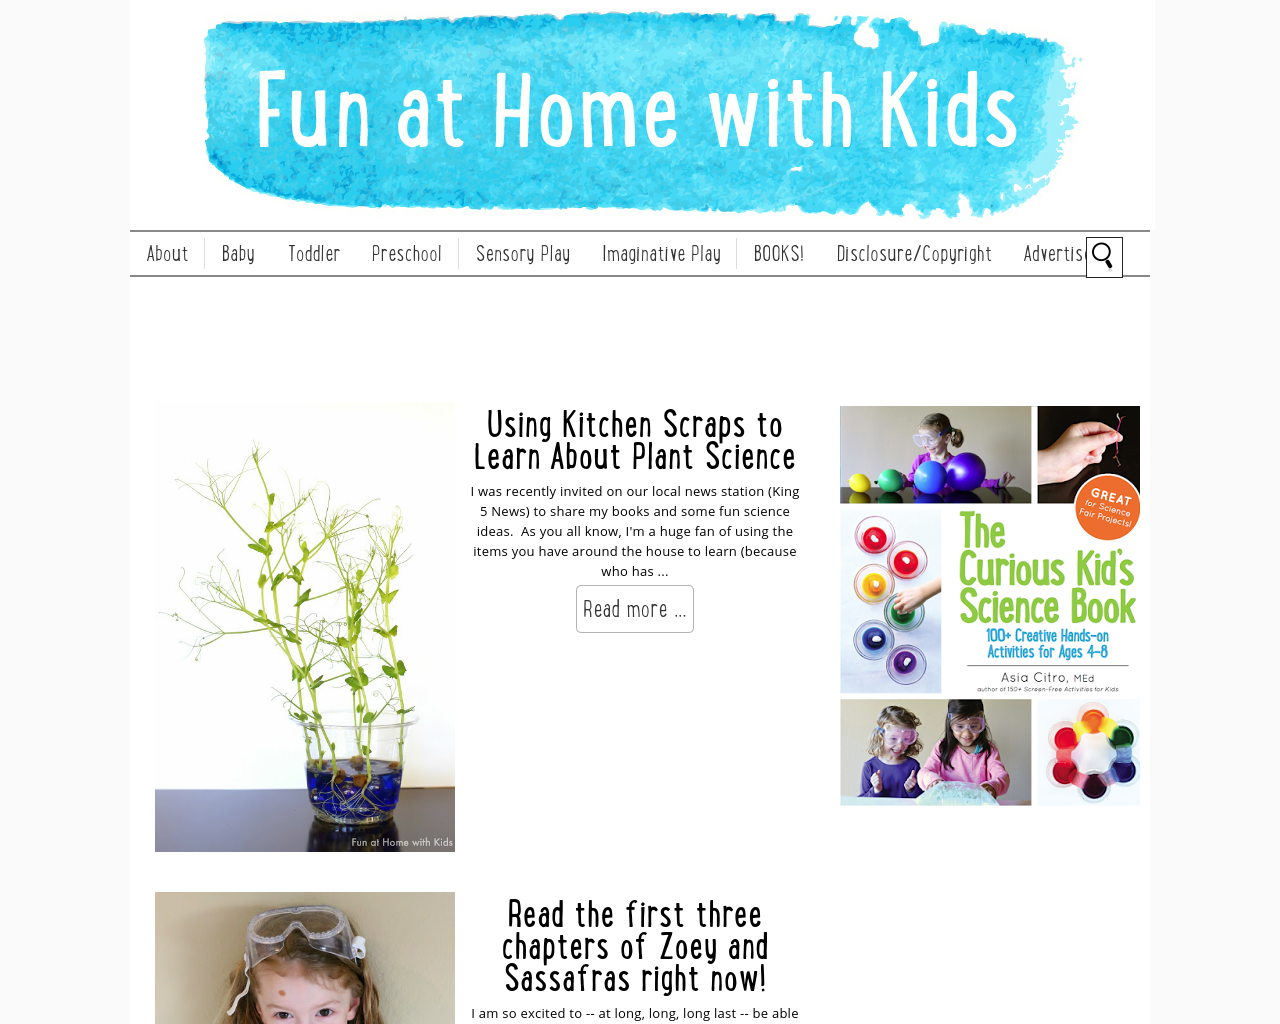 Fun-at-Home-with-Kids-Advertising-Reviews-Pricing